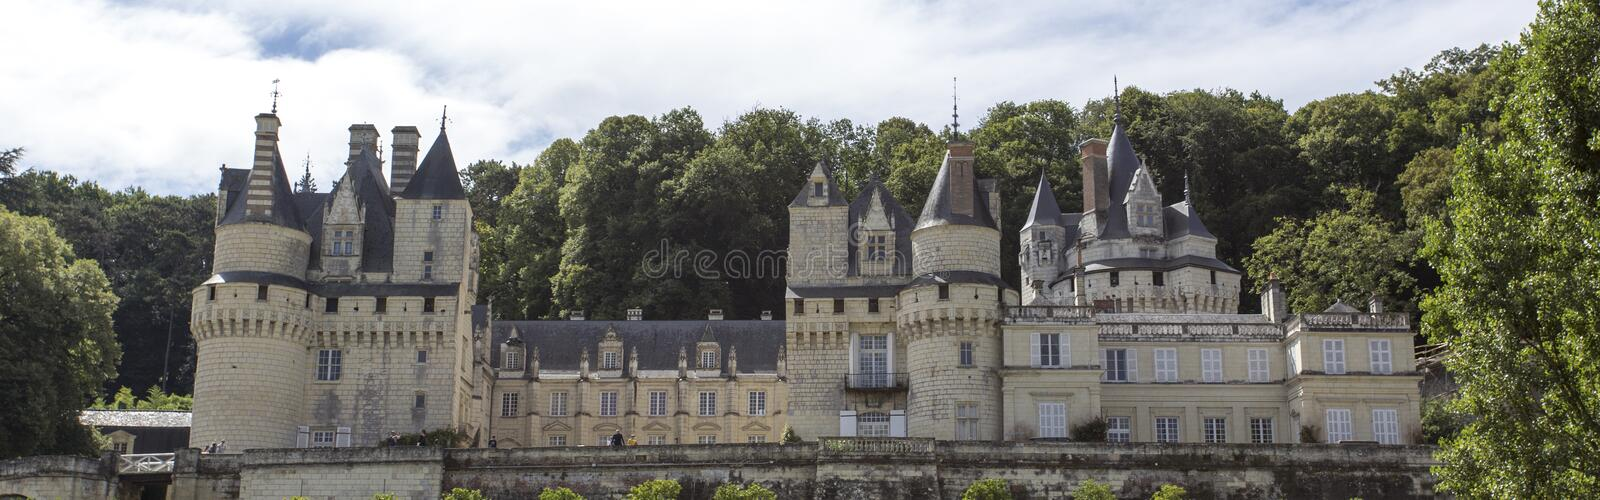 Usse Castle in Loire Valley, Rigny-Usse, France royalty free stock photo